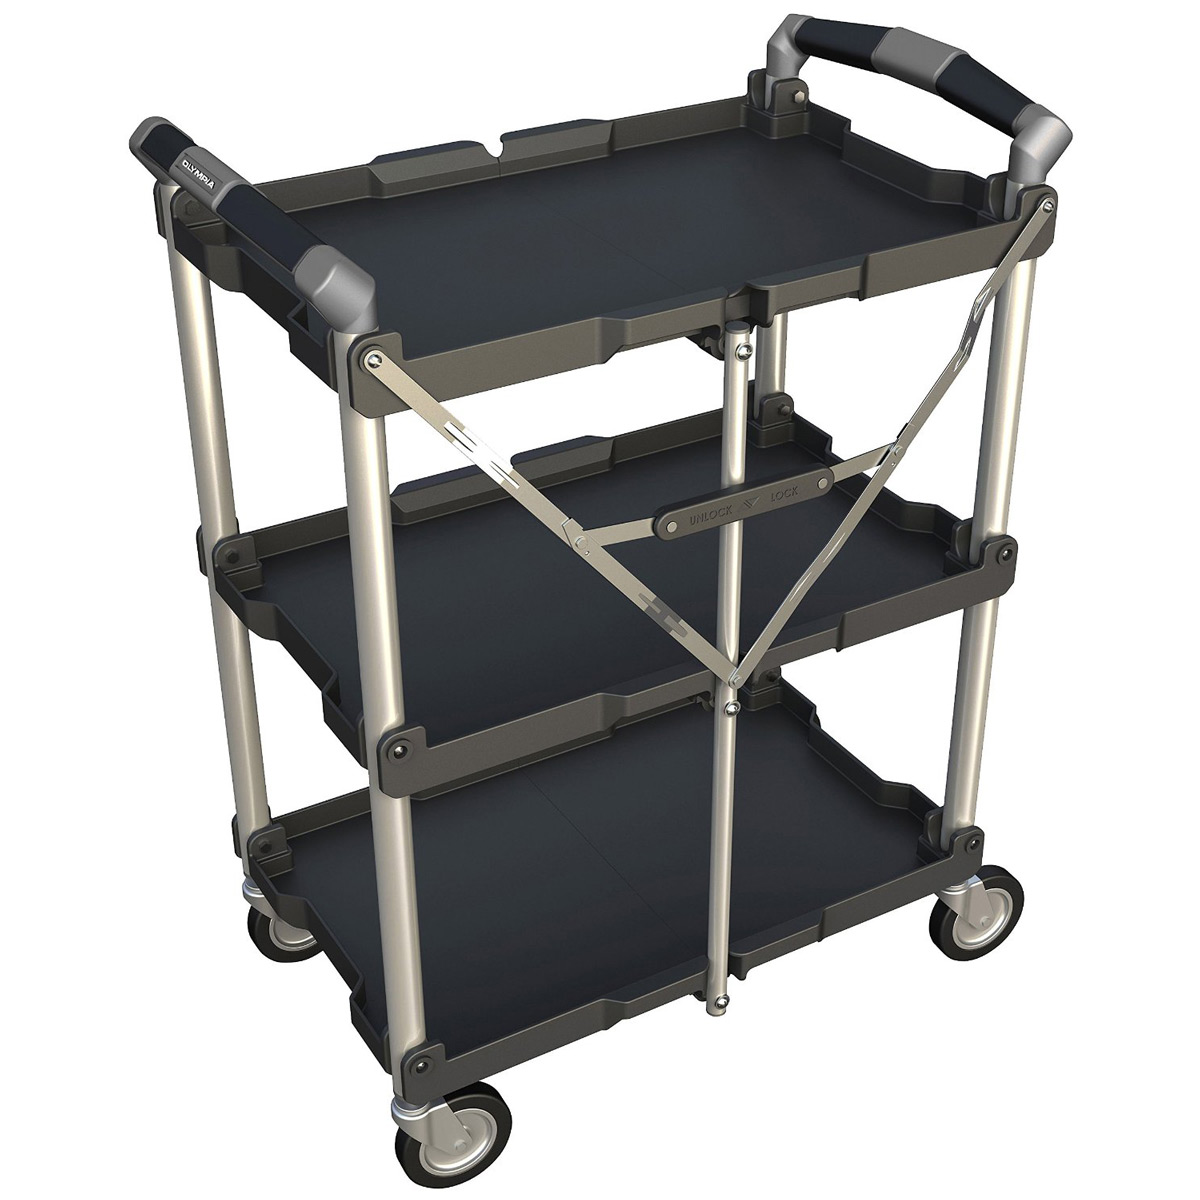 Olympia Tools Pack N Roll Collapsible Utility Cart